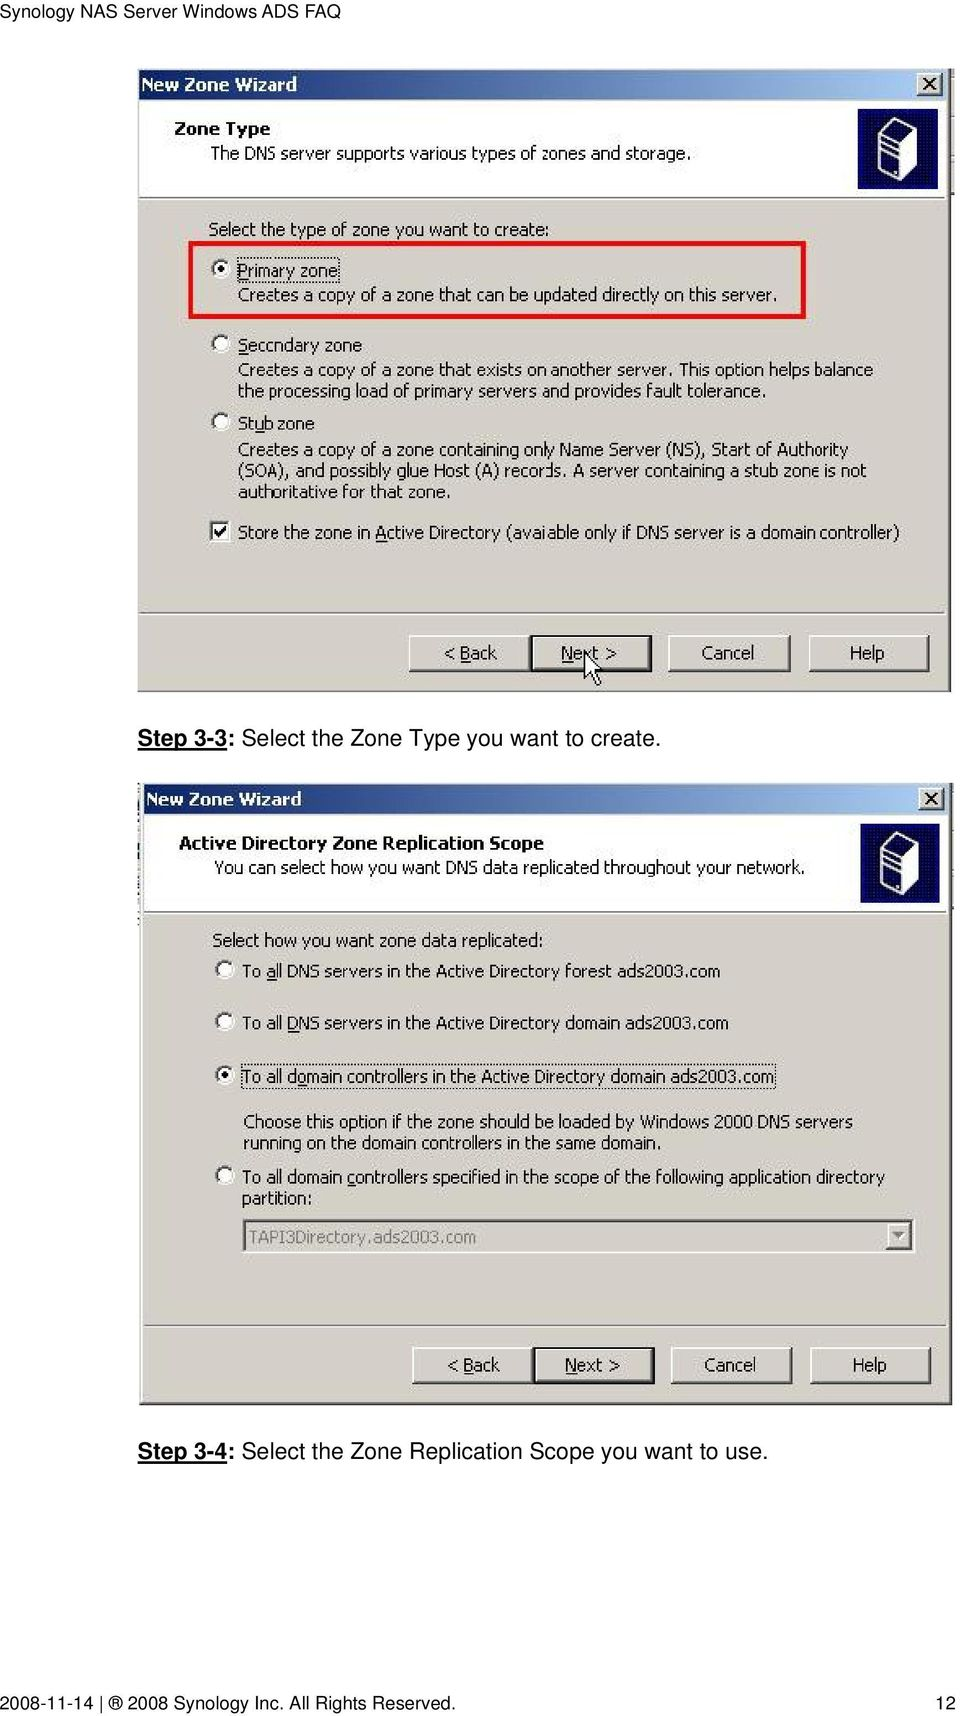 Step 3-4: Select the Zone Replication